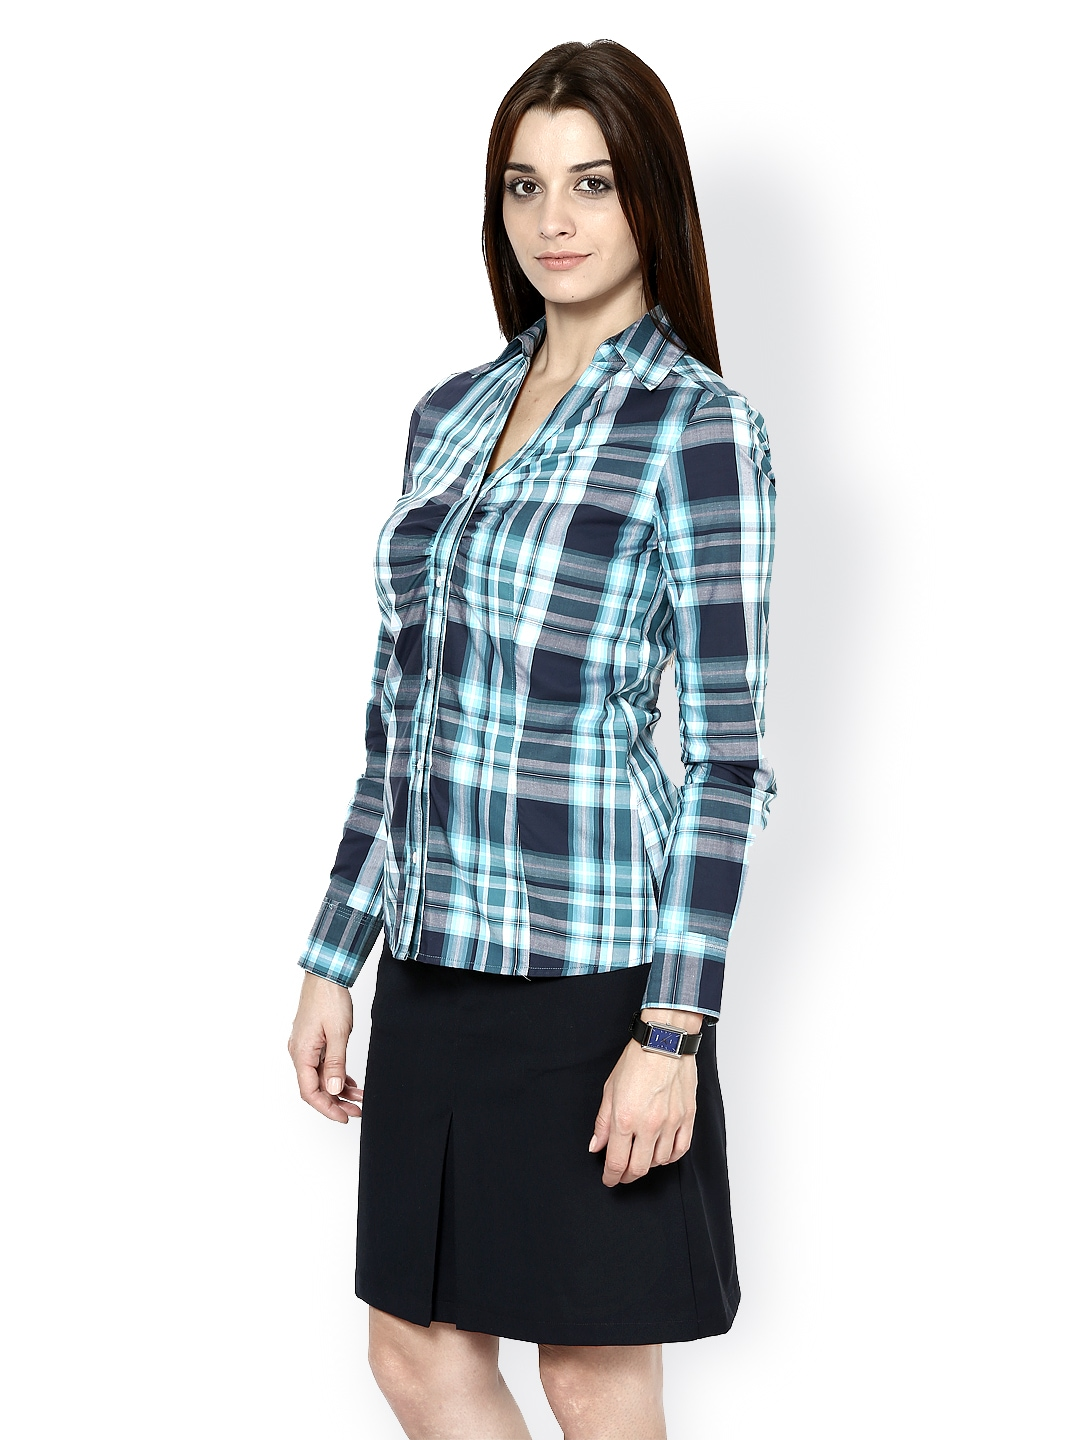 Buy Smart tops from the Womens department at Debenhams. You'll find the widest range of Smart tops products online and delivered to your door. Shop today!